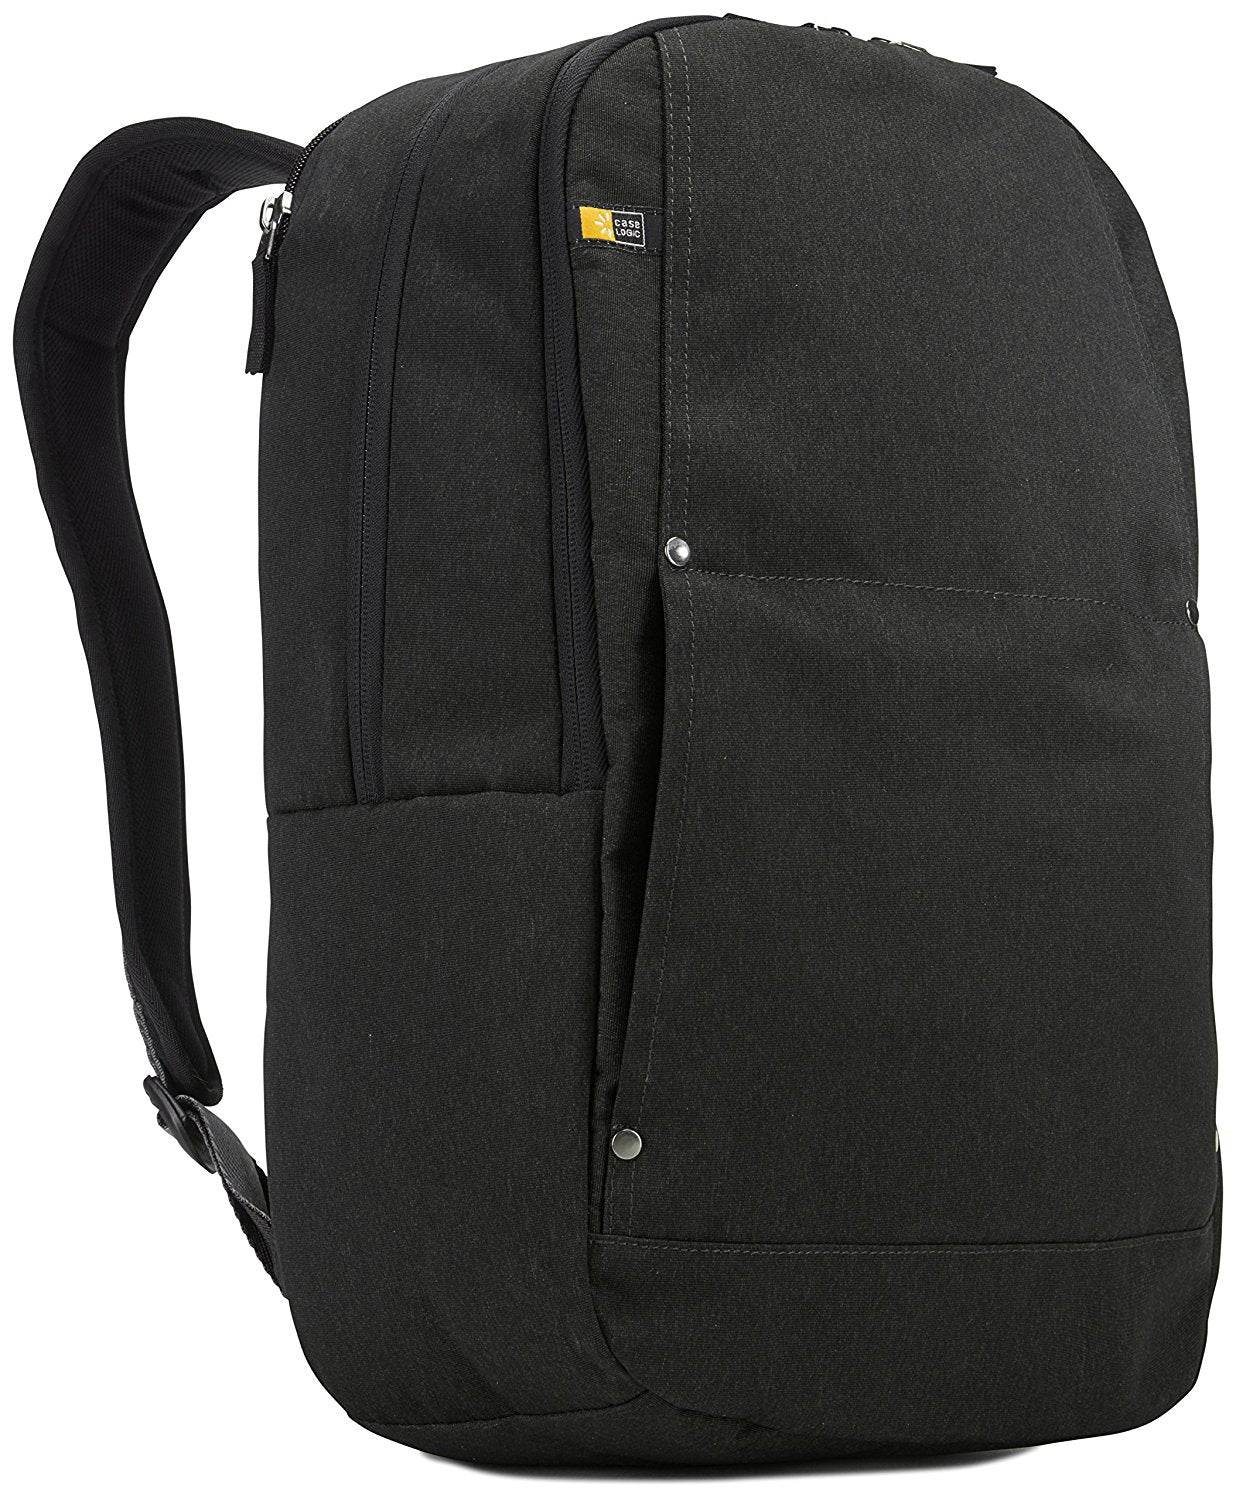 Case Logic  Huxton Laptop Daypack, HUXDP115 Black